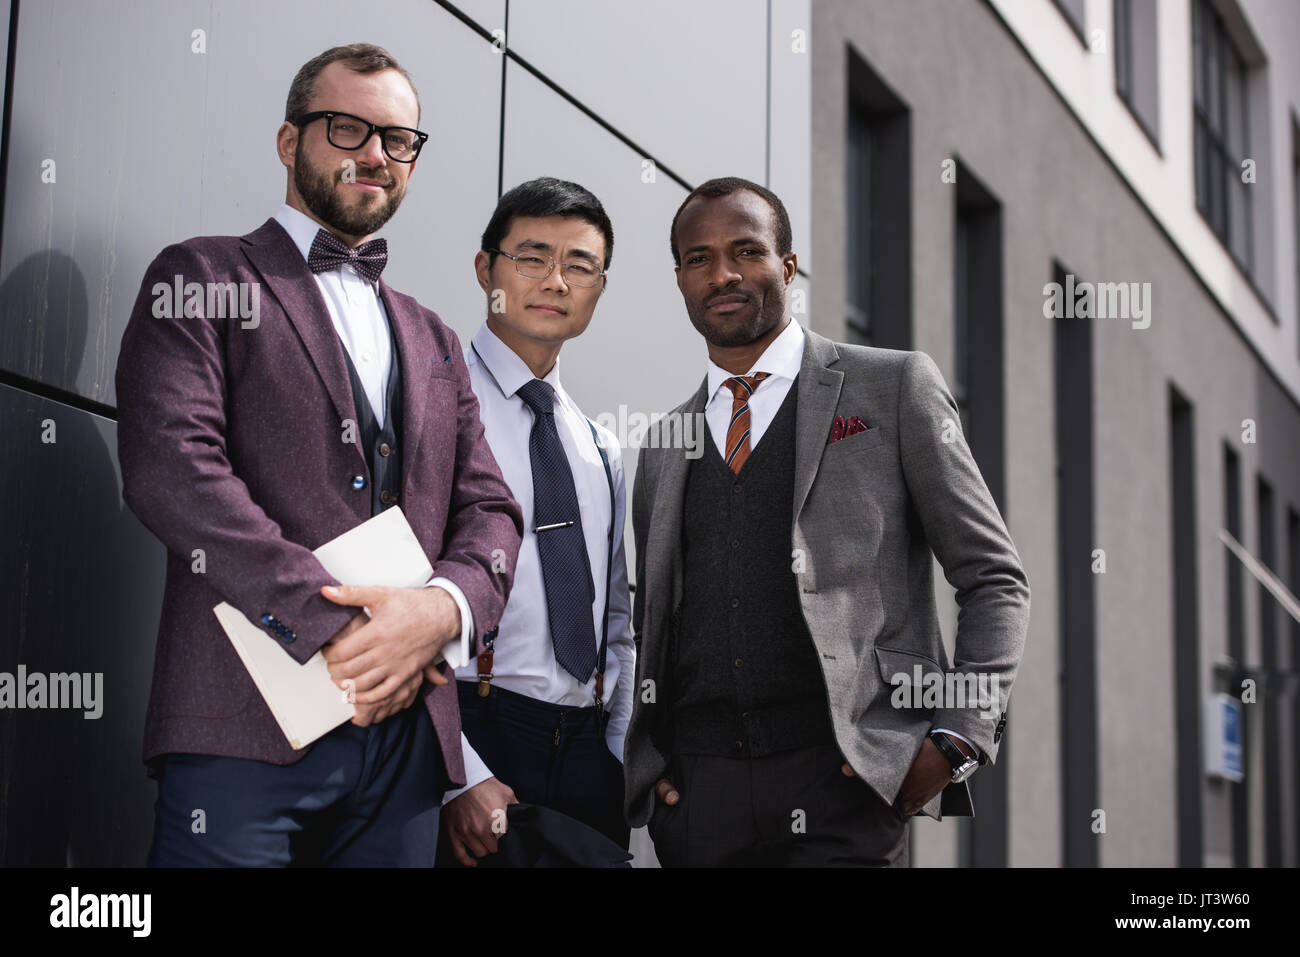 young stylish multiethnic businessmen in formalwear posing outdoors, business team meeting - Stock Image